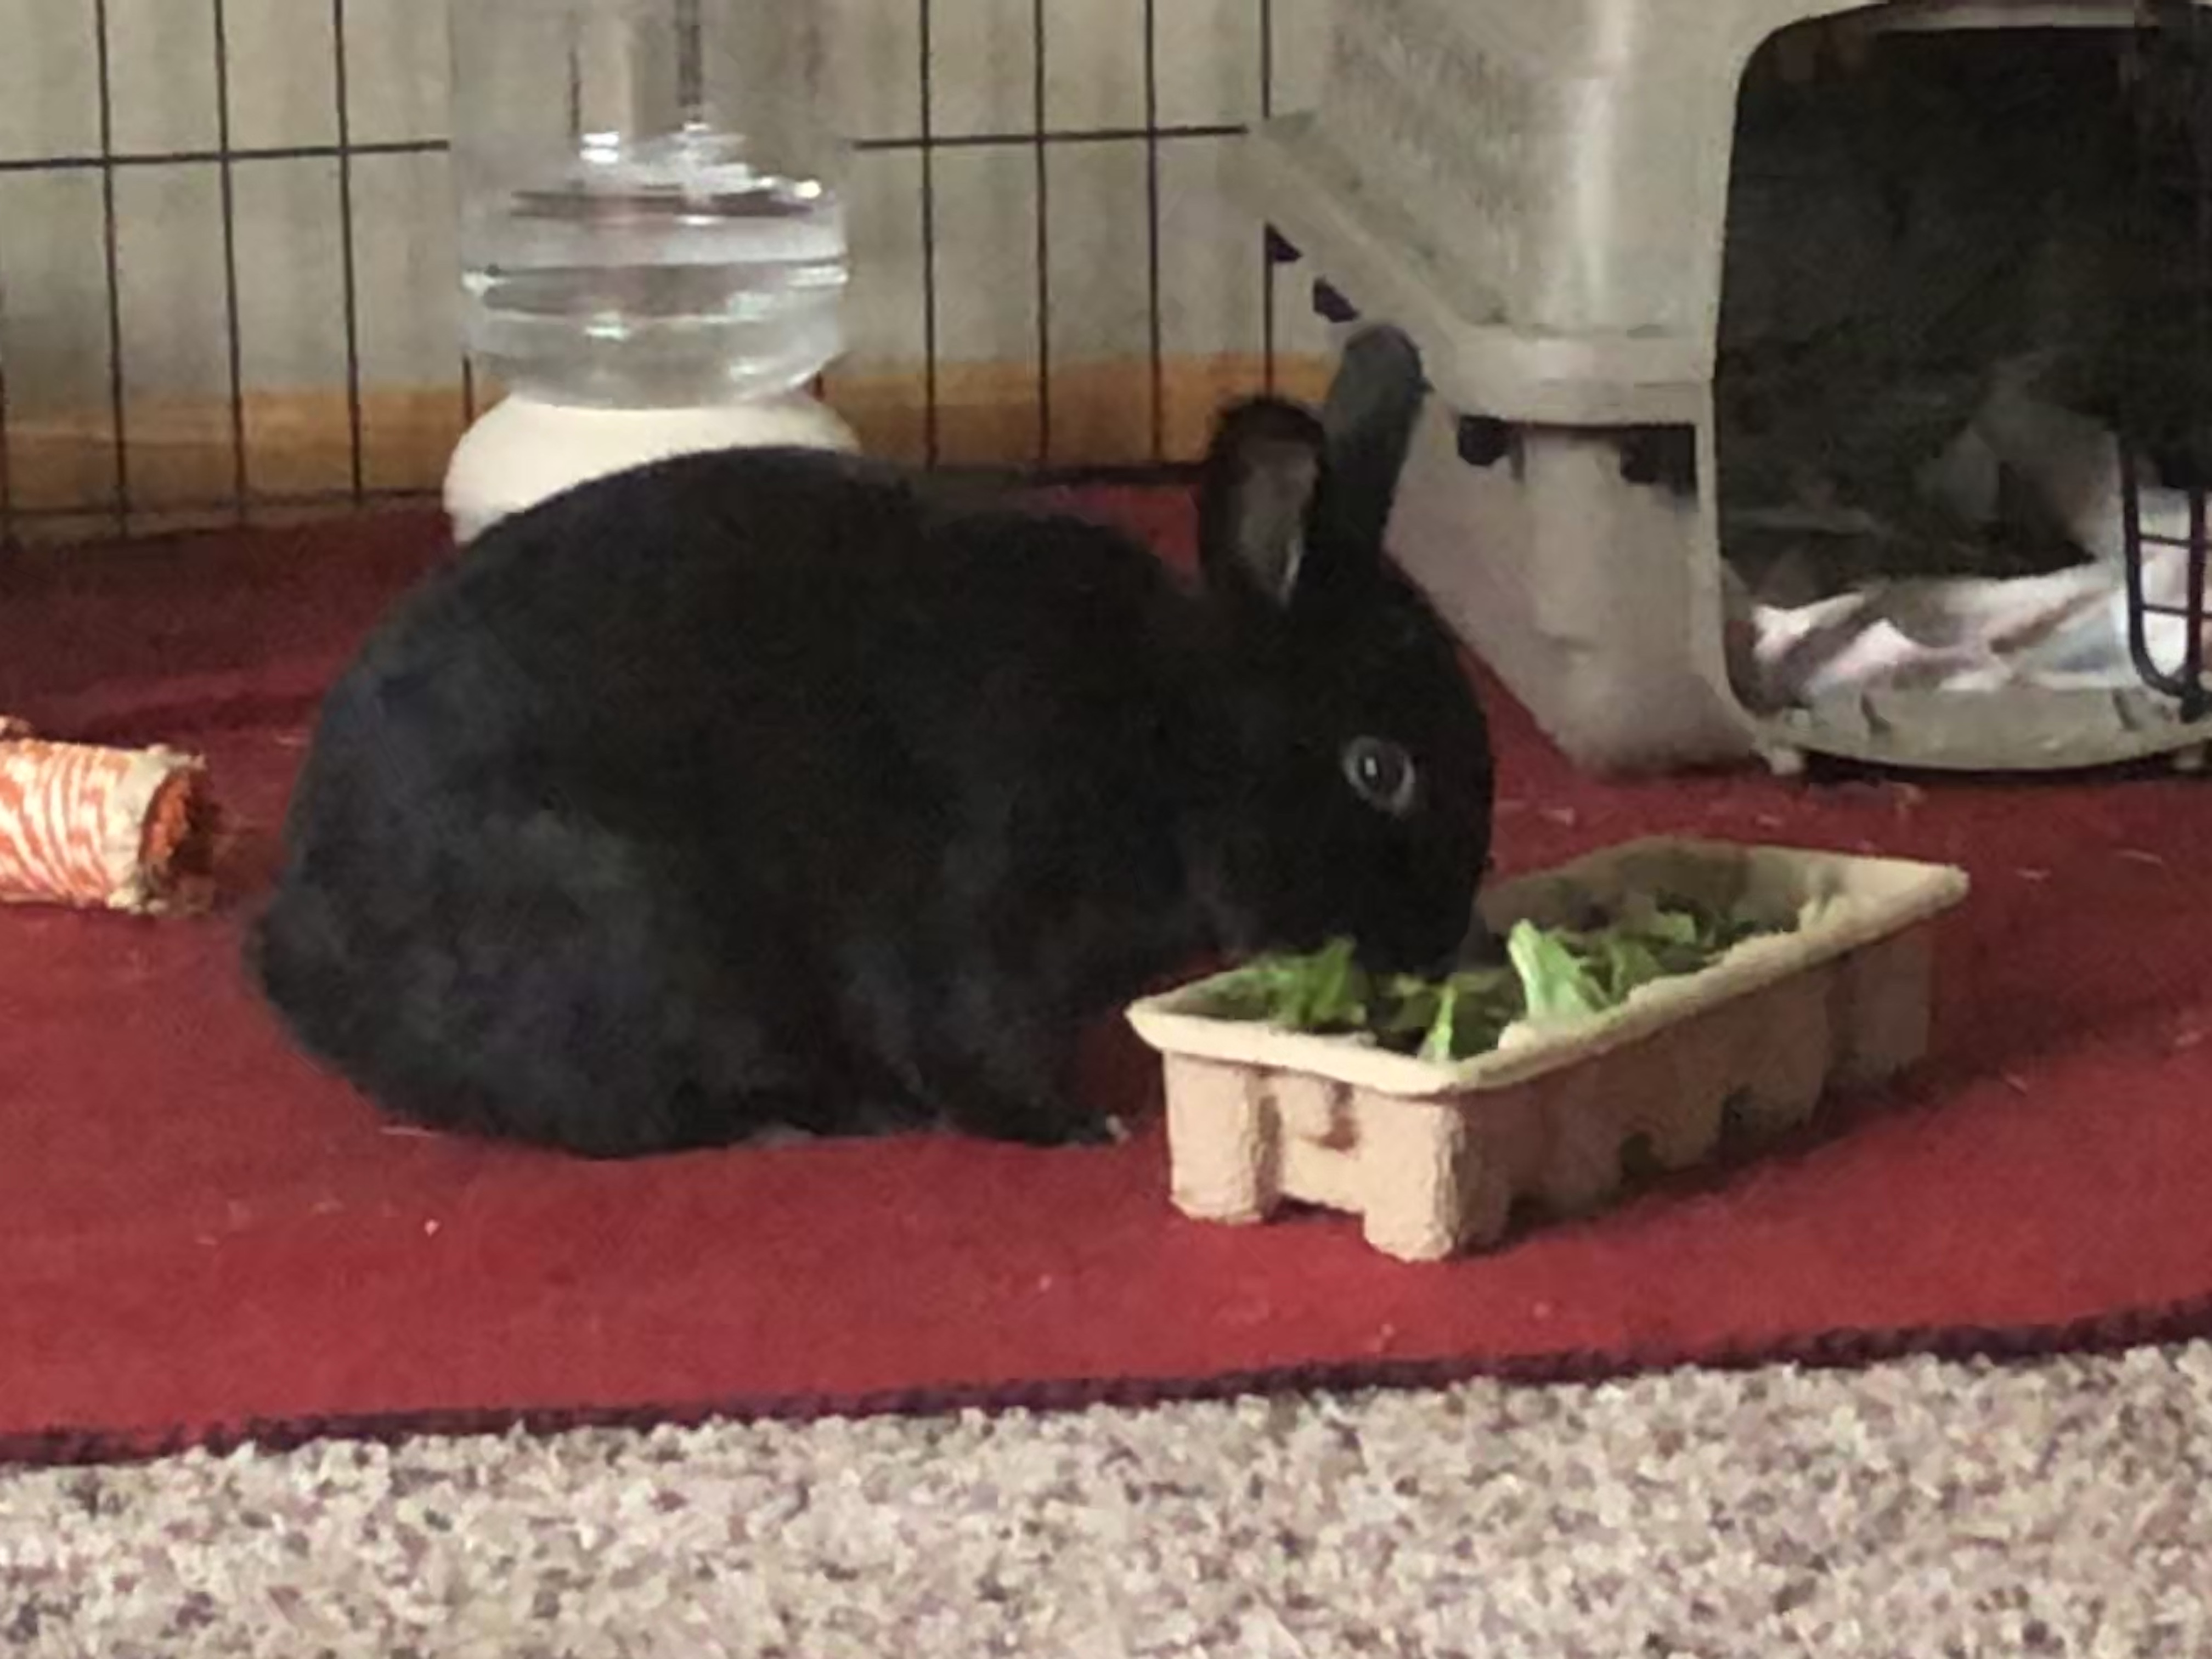 Pepper, a rabbit taken into foster care amid the COVID-19 pandemic, enjoys some greens. Courtesy of Anne Bonney